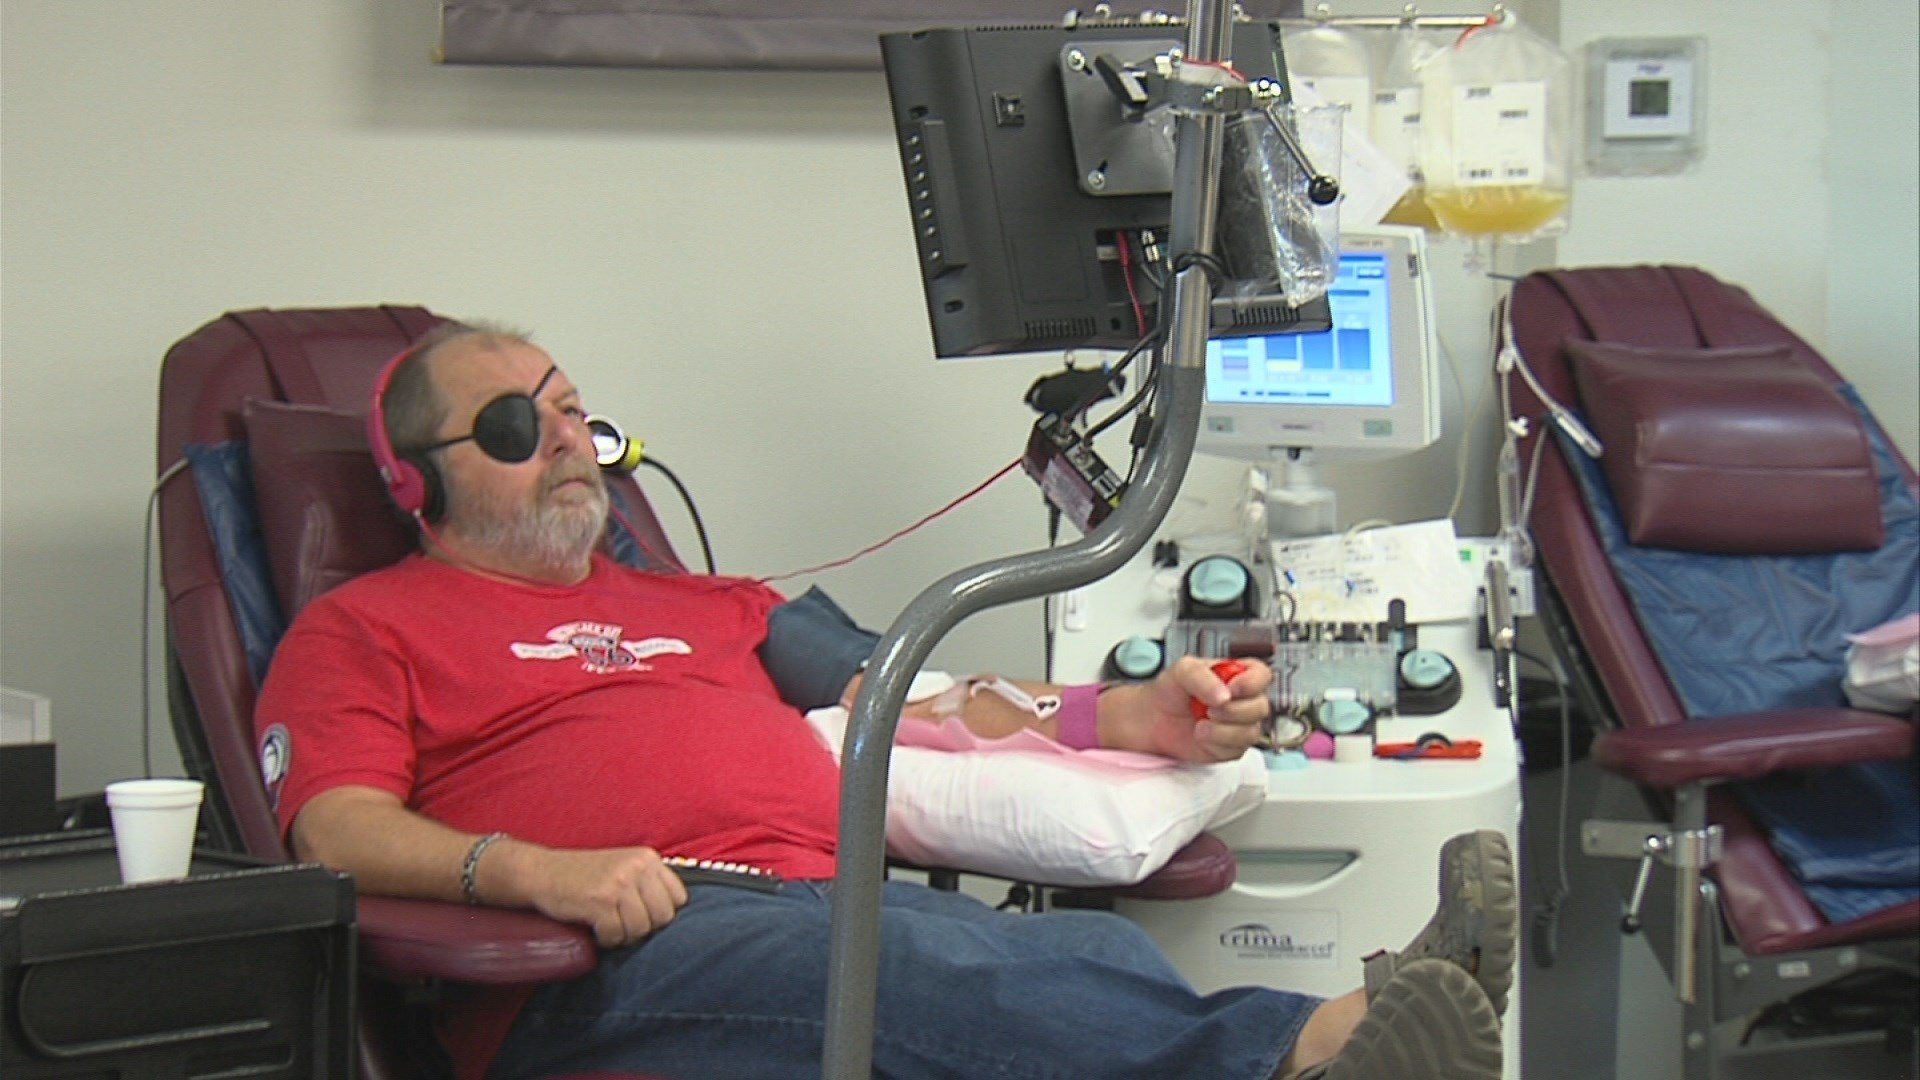 Locals give blood in wake of mass shooting and recent natural disasters